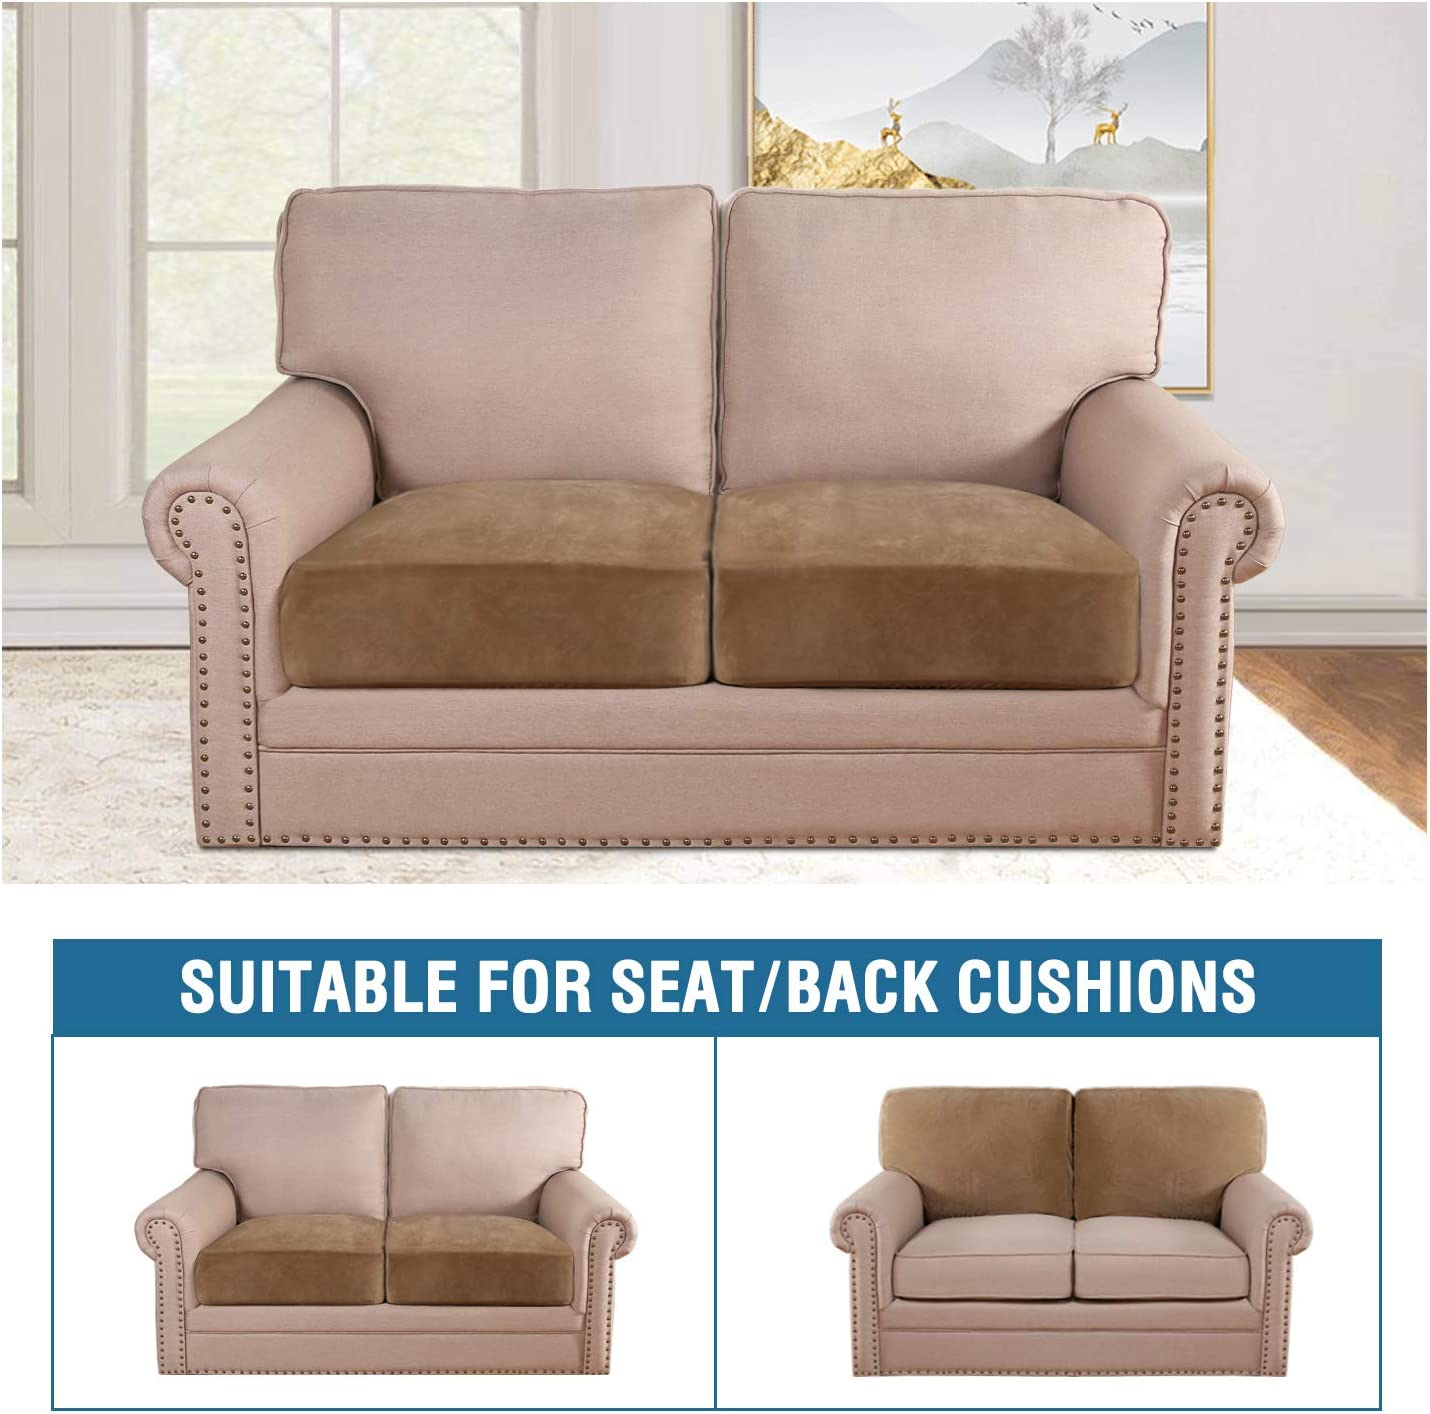 1 Pack, Camel Velvet Stretch Couch Cushion Cover Plush Cushion Slipcover for Chair Cushion Furniture Protector Seat Cushion Sofa Cover with Elastic Bottom Washable